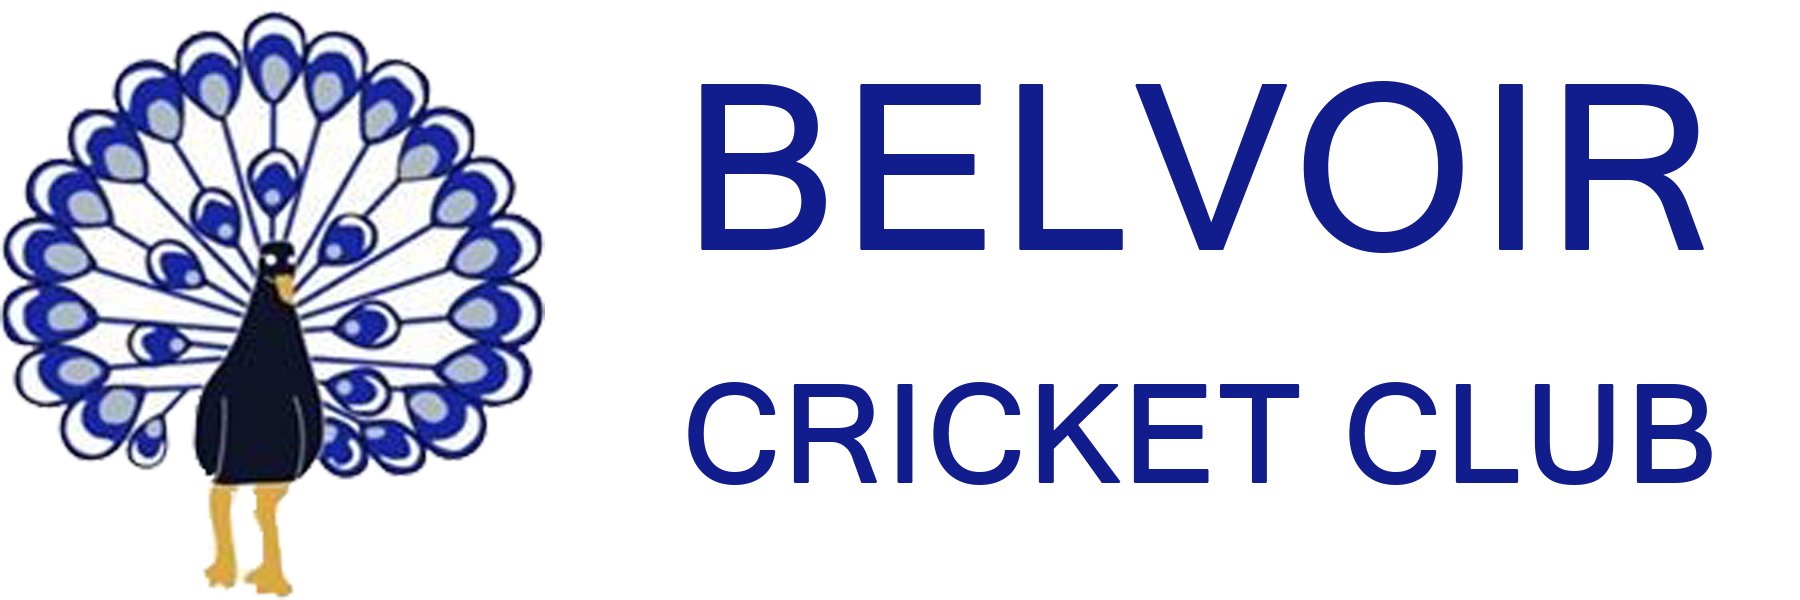 belvoircricket.club